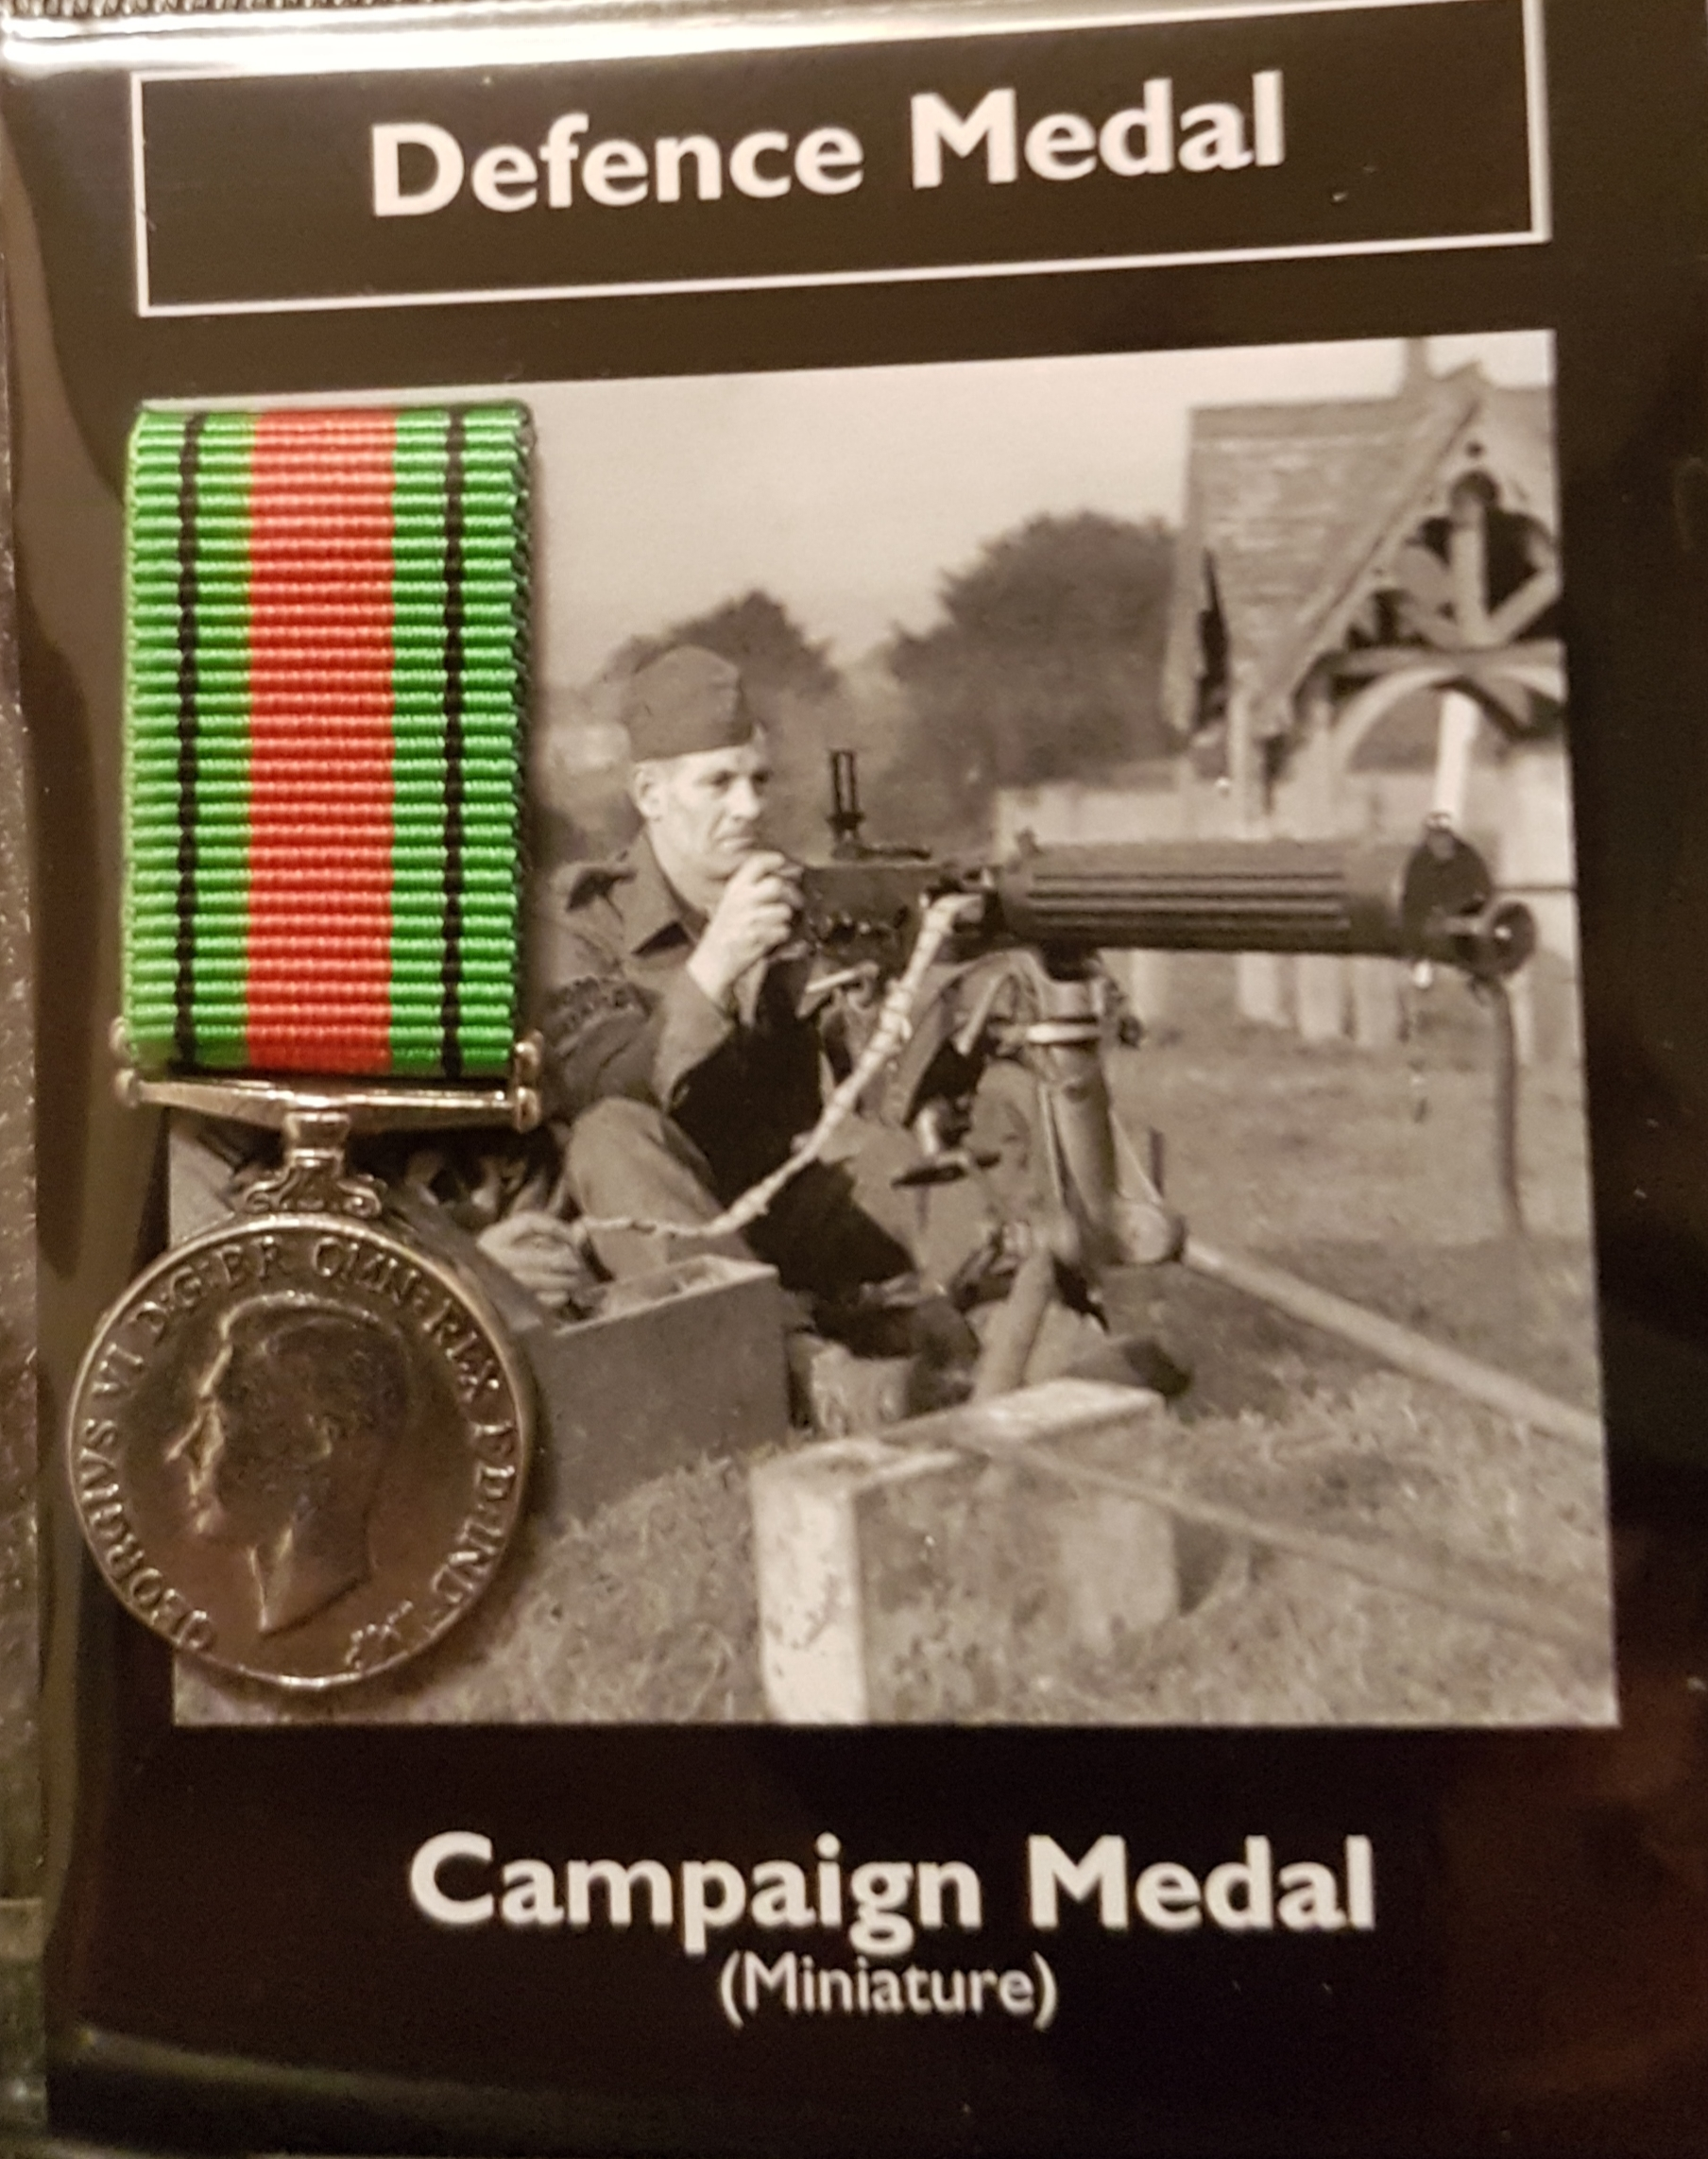 Defence Medal - miniature